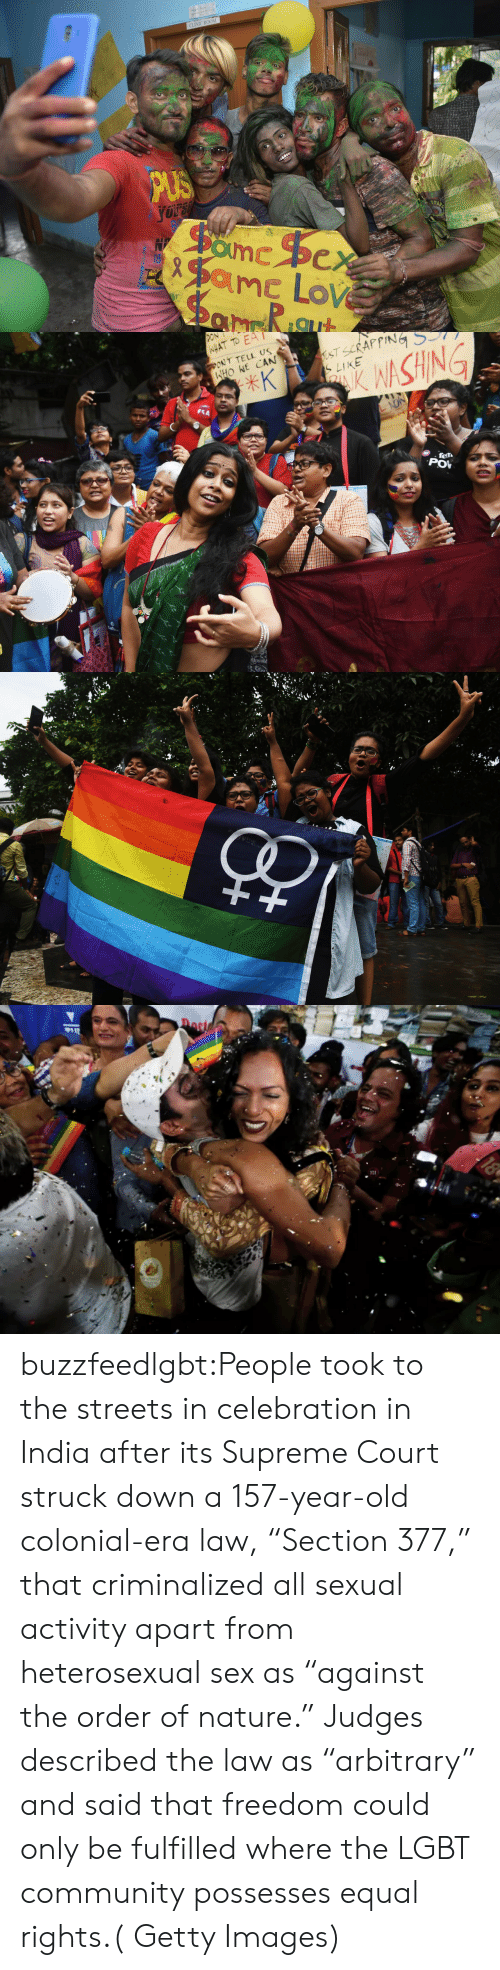 """pov: CLINIC ROOM   HAT TO EA  ONT TELL US  HONE CAN  LIKE  SHIN  POV buzzfeedlgbt:People took to the streets in celebration in India after its Supreme Court struck down a 157-year-old colonial-era law, """"Section 377,"""" that criminalized all sexual activity apart from heterosexual sex as """"against the order of nature."""" Judges described the law as """"arbitrary"""" and said that freedom could only be fulfilled where the LGBT community possesses equal rights.( Getty Images)"""